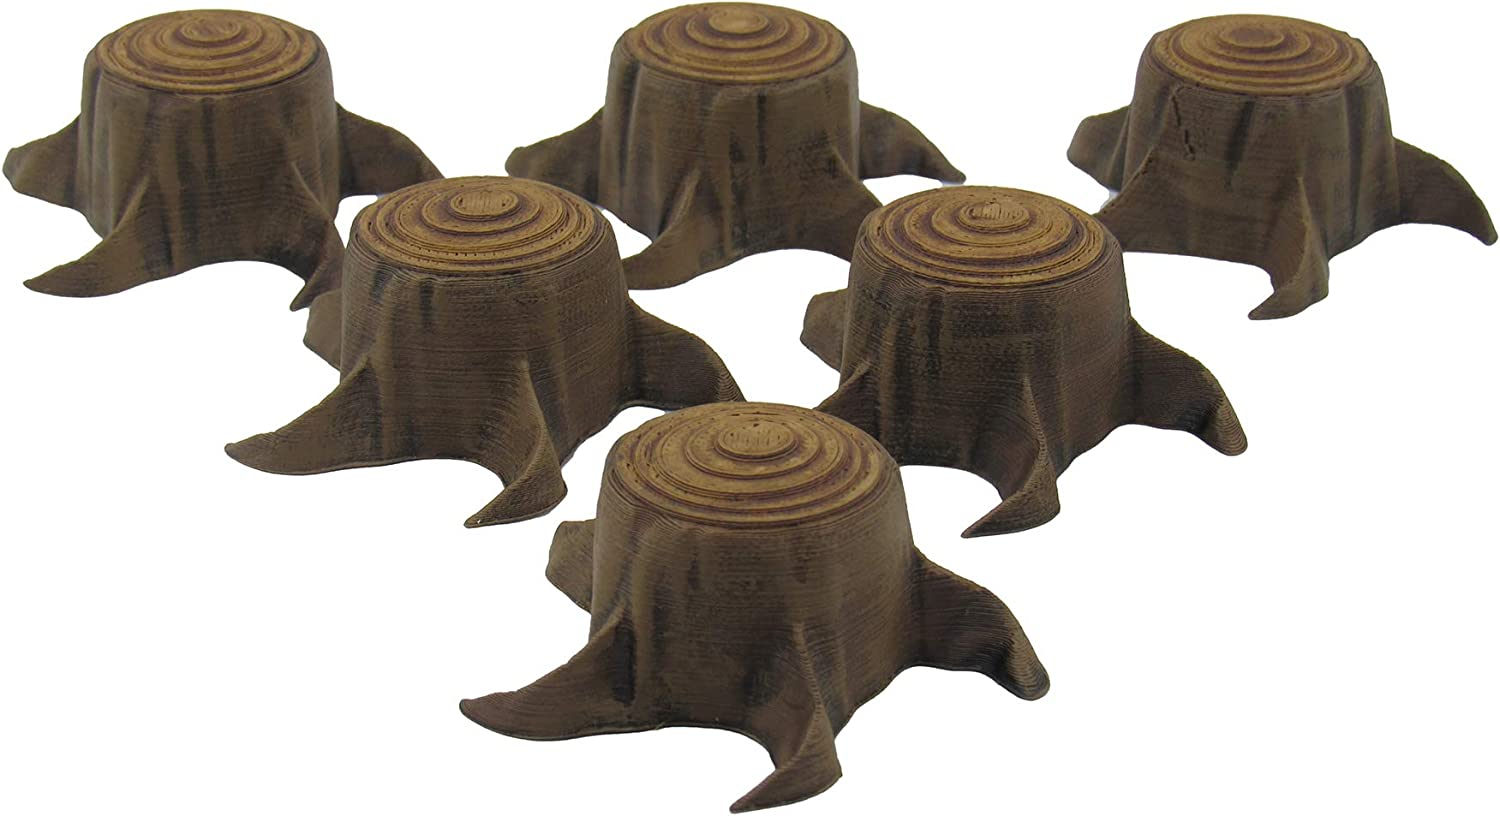 Tree Stumps, Terrain Scenery for Tabletop 28mm Miniatures Wargame ...